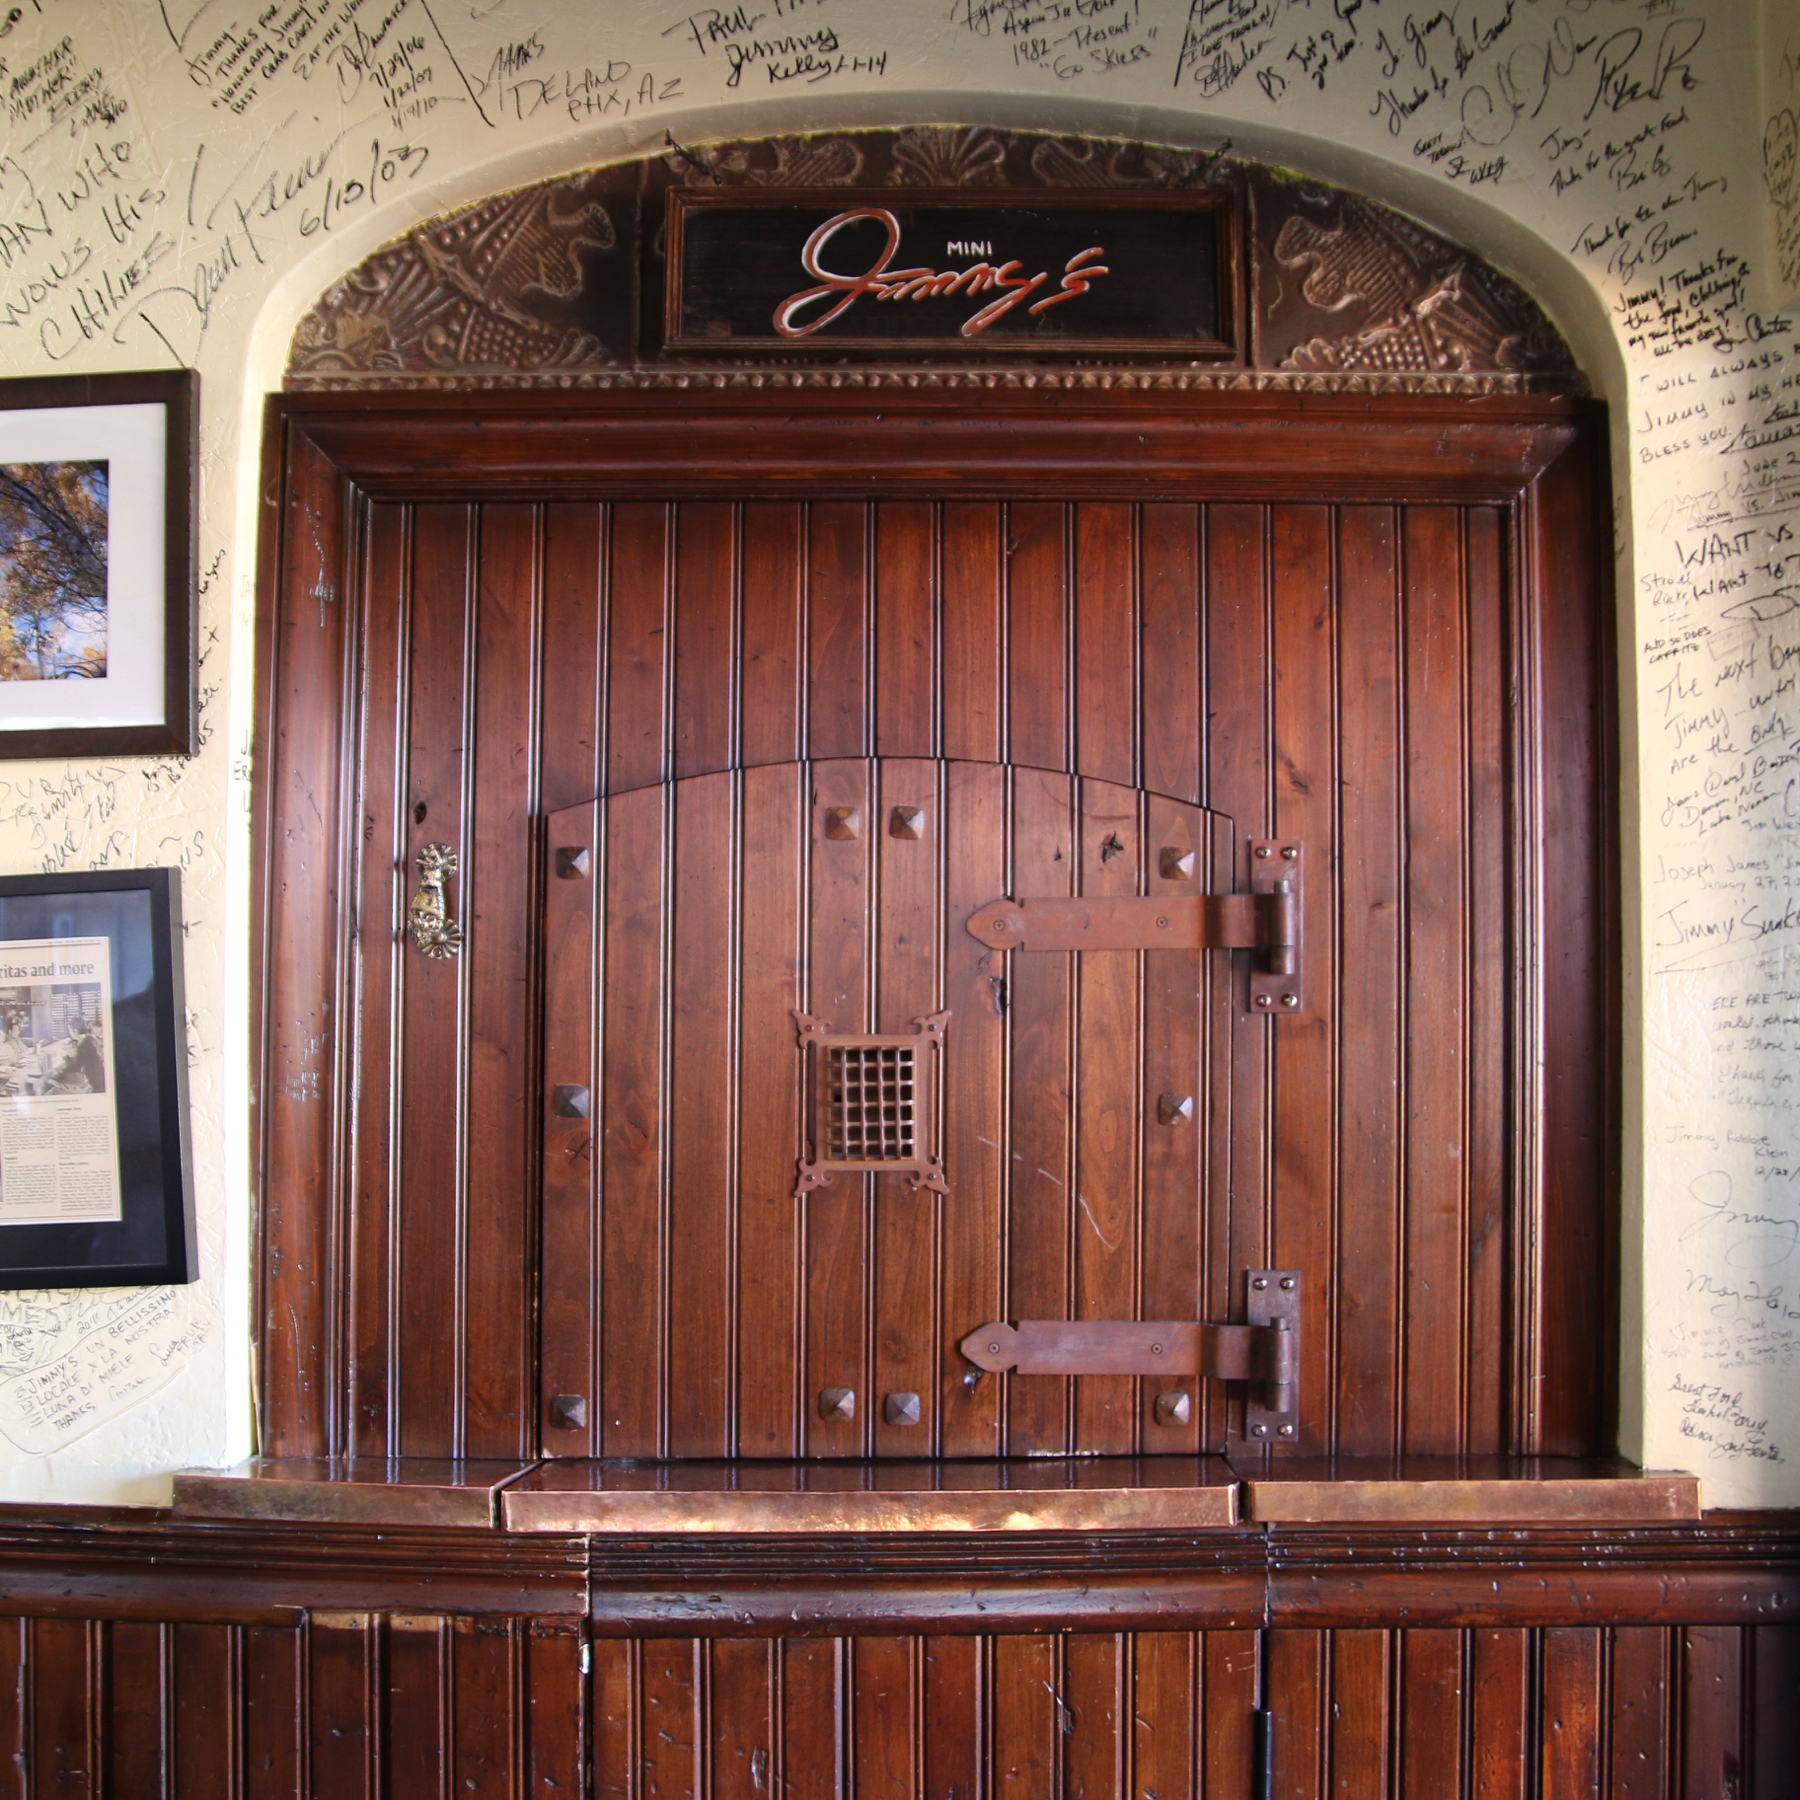 The Coolest Bar in Aspen Was In an Actual Closet